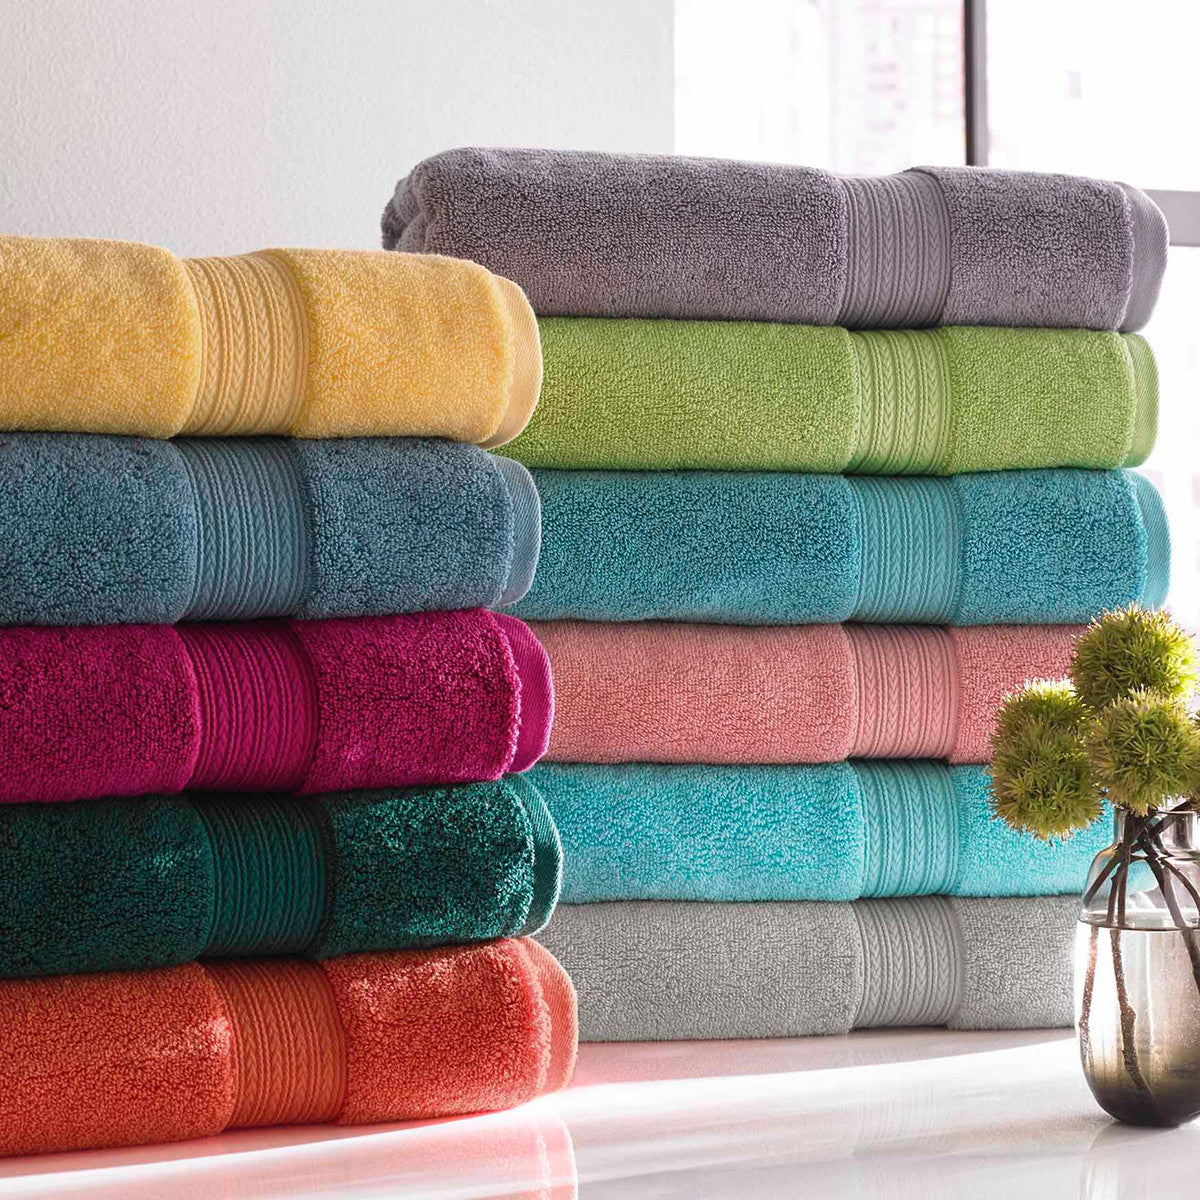 Pack of 6 Exclusive(17x11) Hand Towel's-BE684